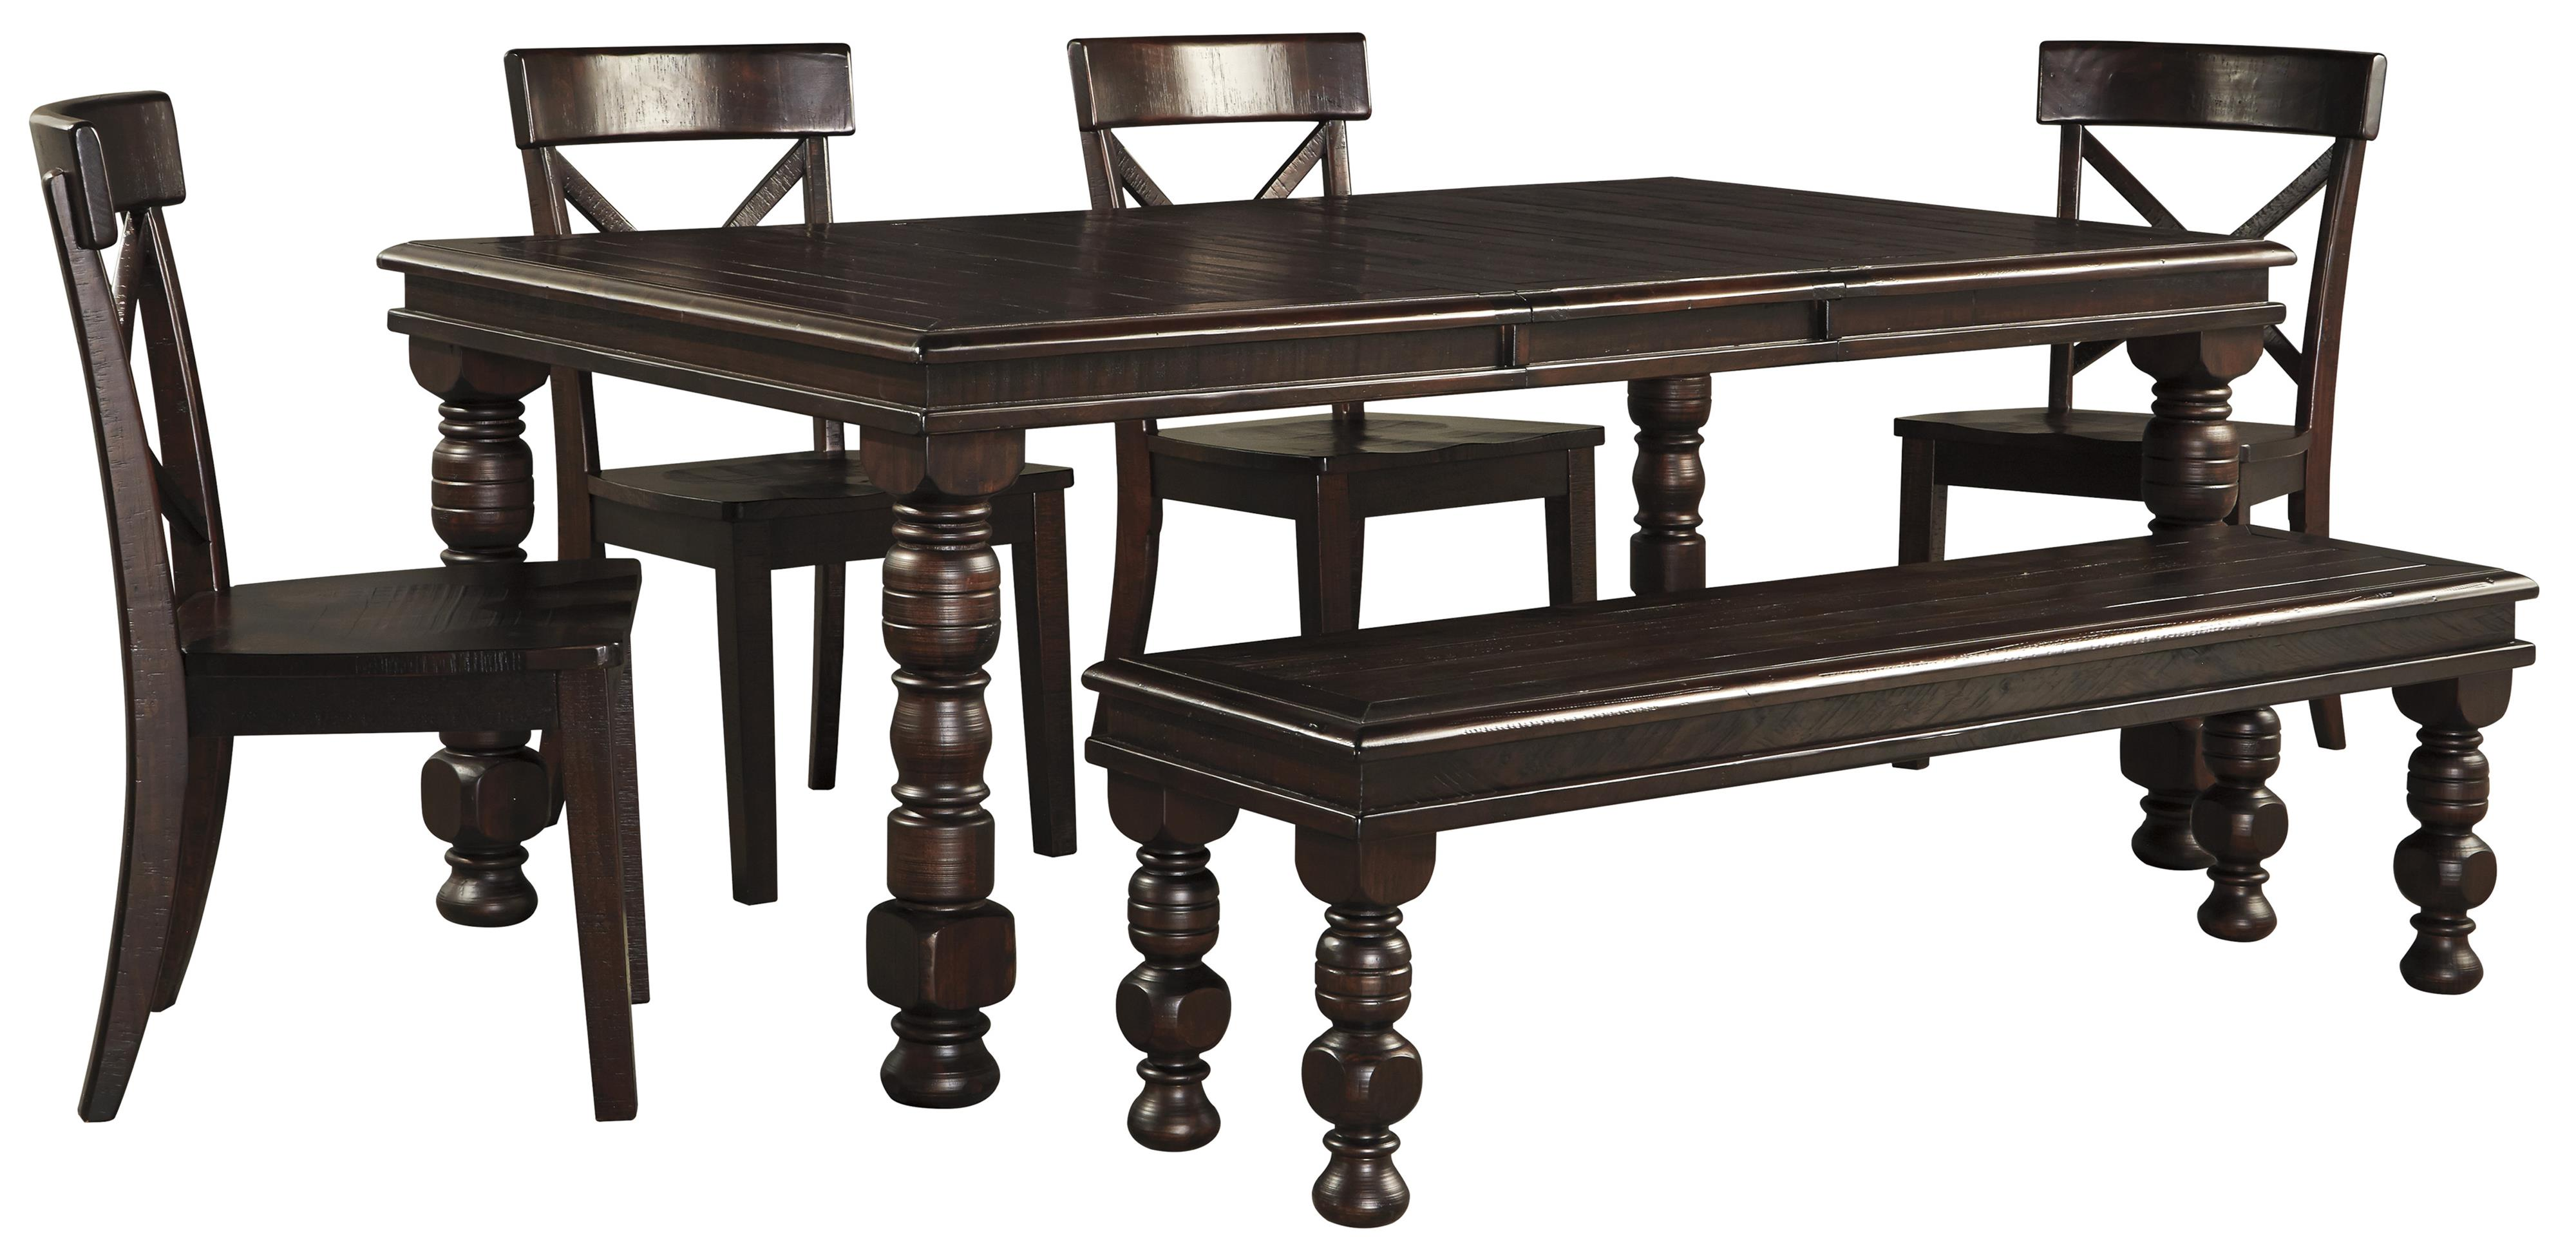 6 Piece Solid Pine Dining Table Set with Bench by Signature Design